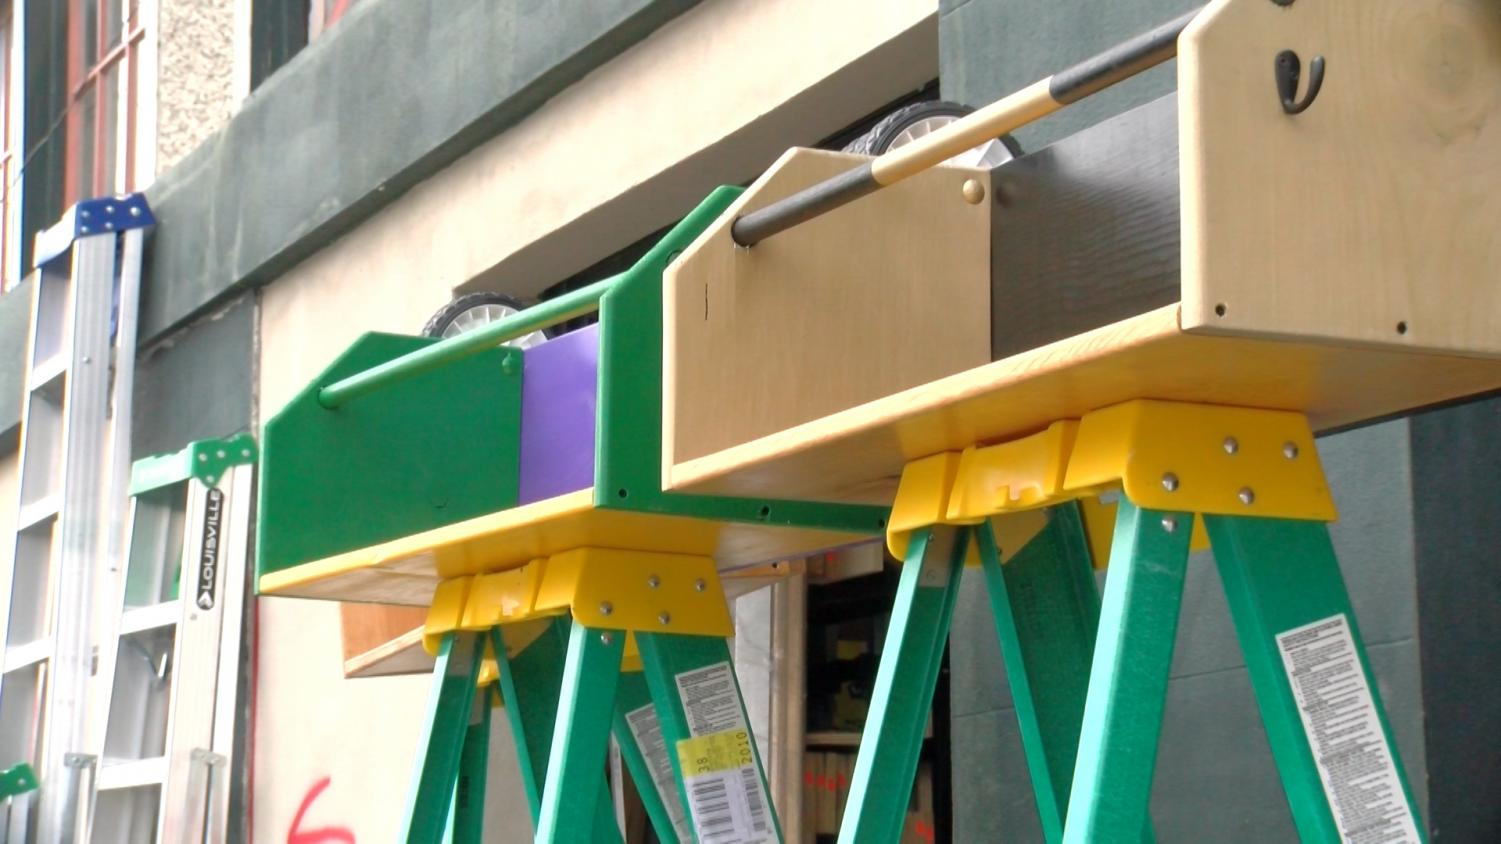 Two ladders stand by the sidewalk. Due to new regulations from New Orleans City Council, ladders must be removed from the parade route.